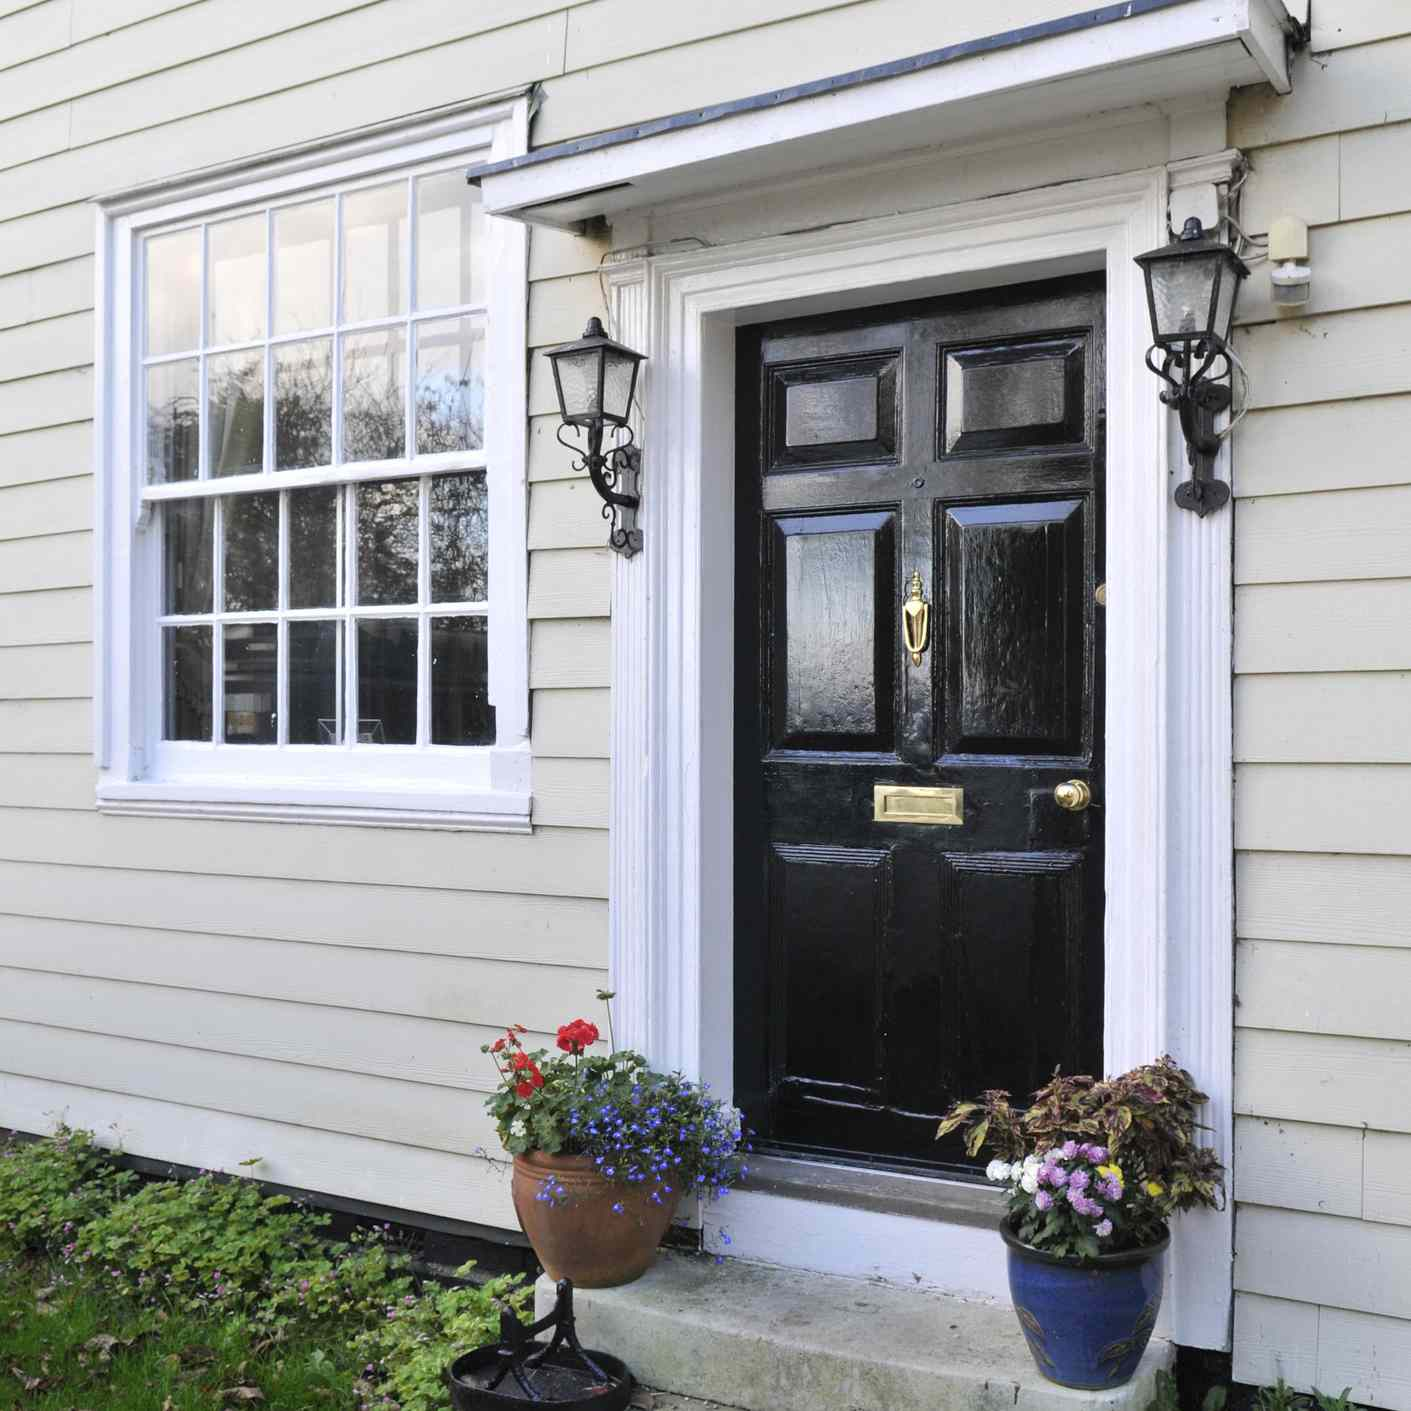 A black front door on a white house with steps and flowers